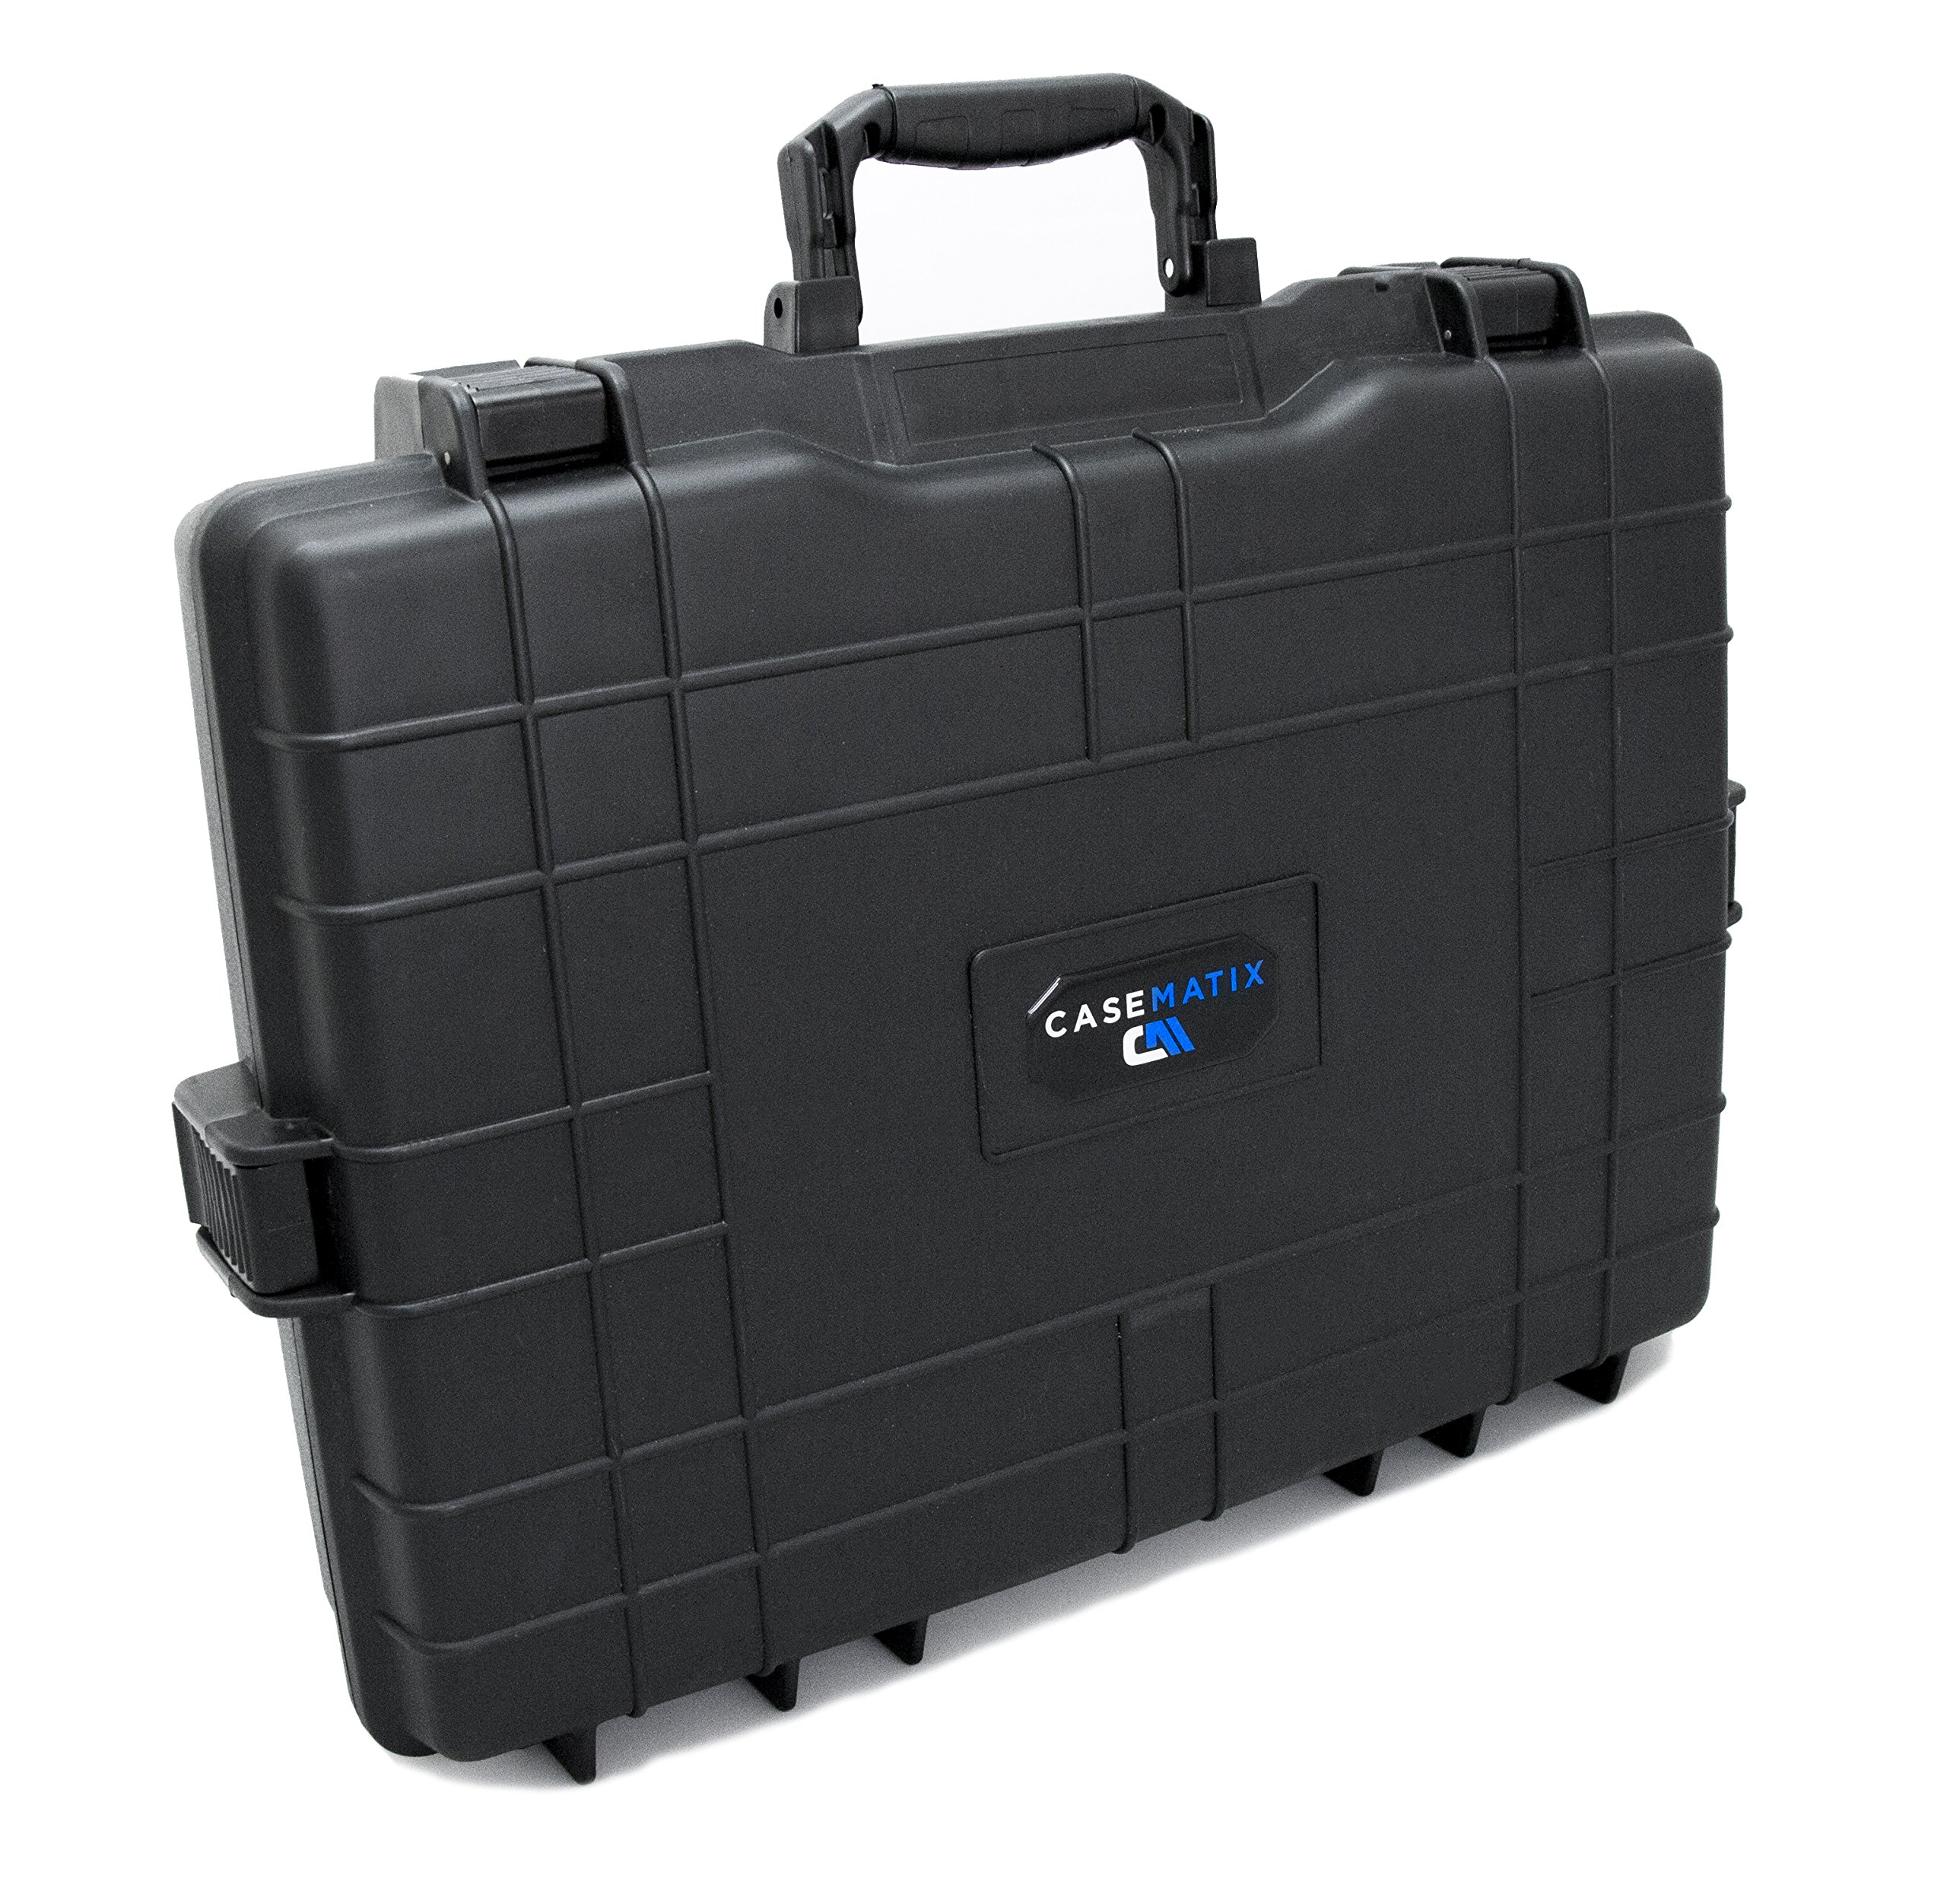 Casematix Elite Waterproof Gaming Laptop Case for Traveling with 15.6 Inch - 17.2 Inch Gamer Computers and Accessories for Alienware , Asus , Razer , Lenovo , MSI , Acer , Dell, Hp Keyboards , Mice by CASEMATIX